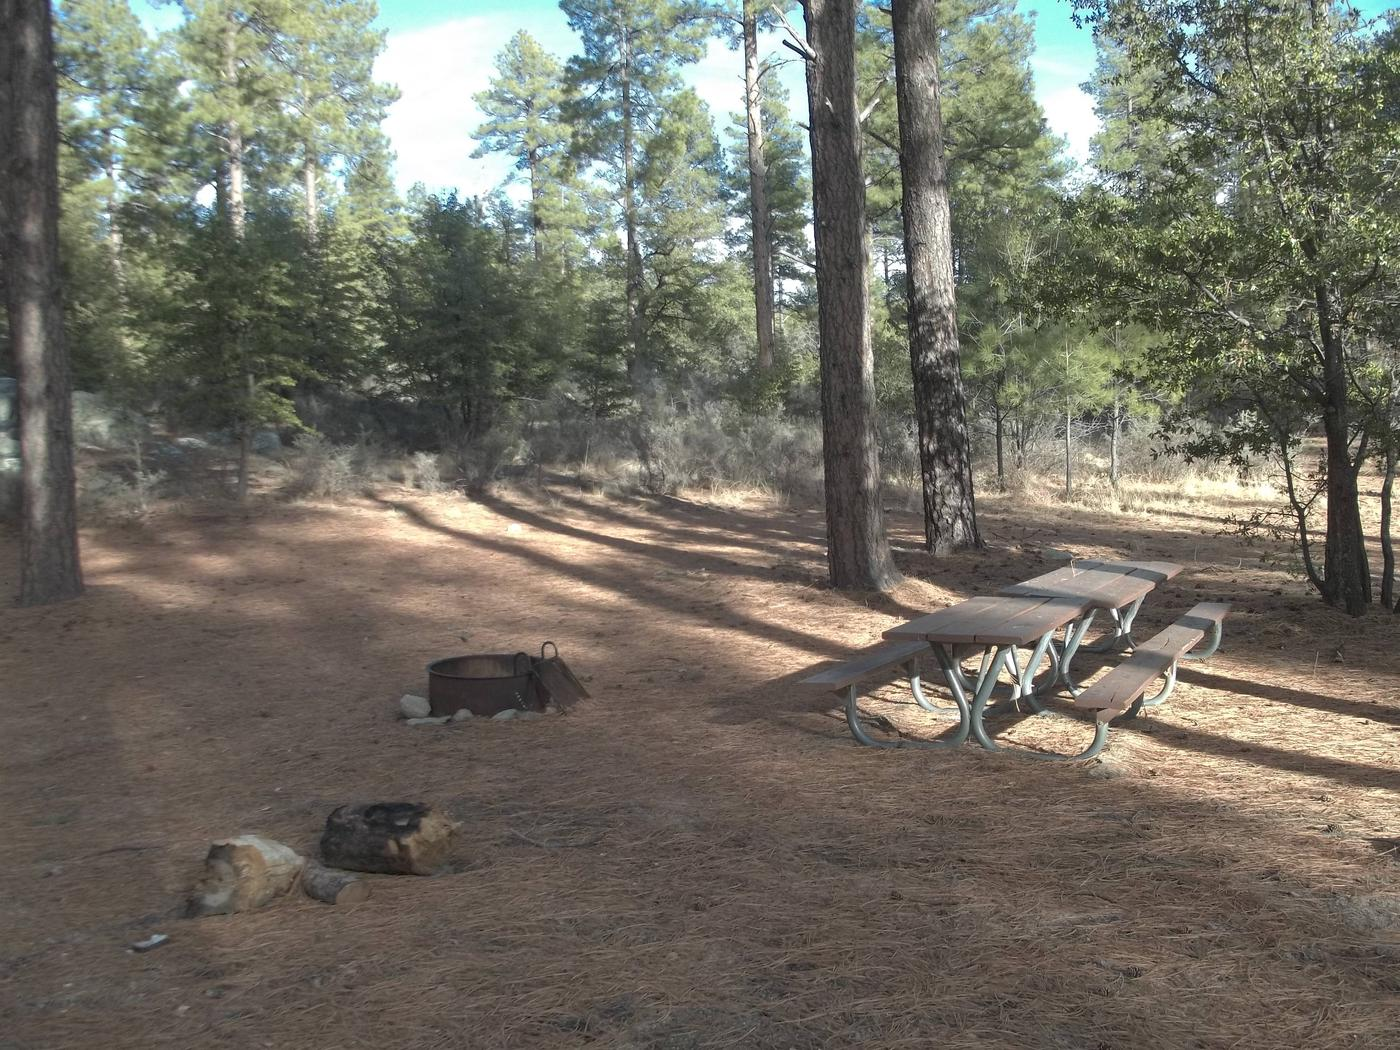 UPPER WOLF CREEK GROUP CAMPAdditional R/V or Camper trailer site with bench and fire pit